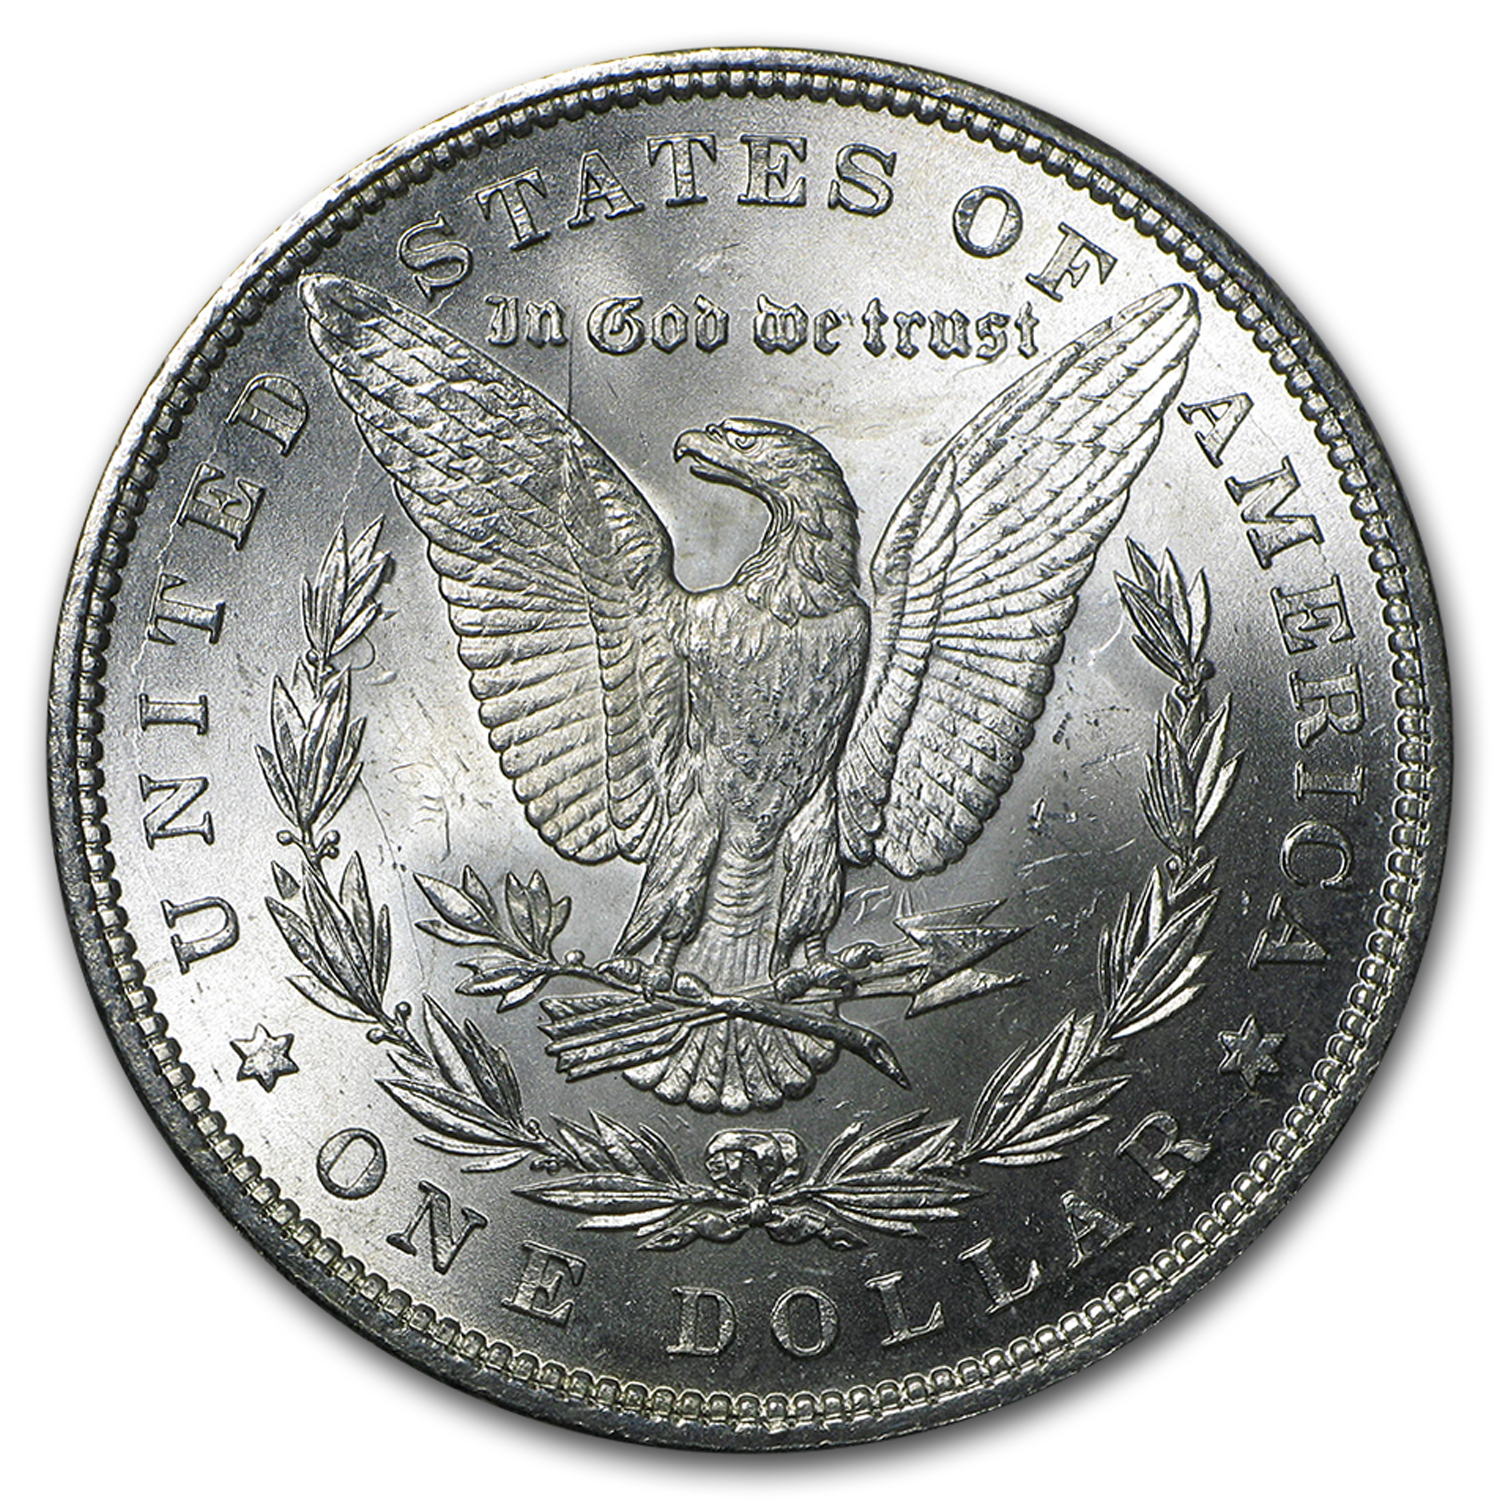 1884 Morgan Dollar - BU - VAM-2A - E Reverse Hot-50